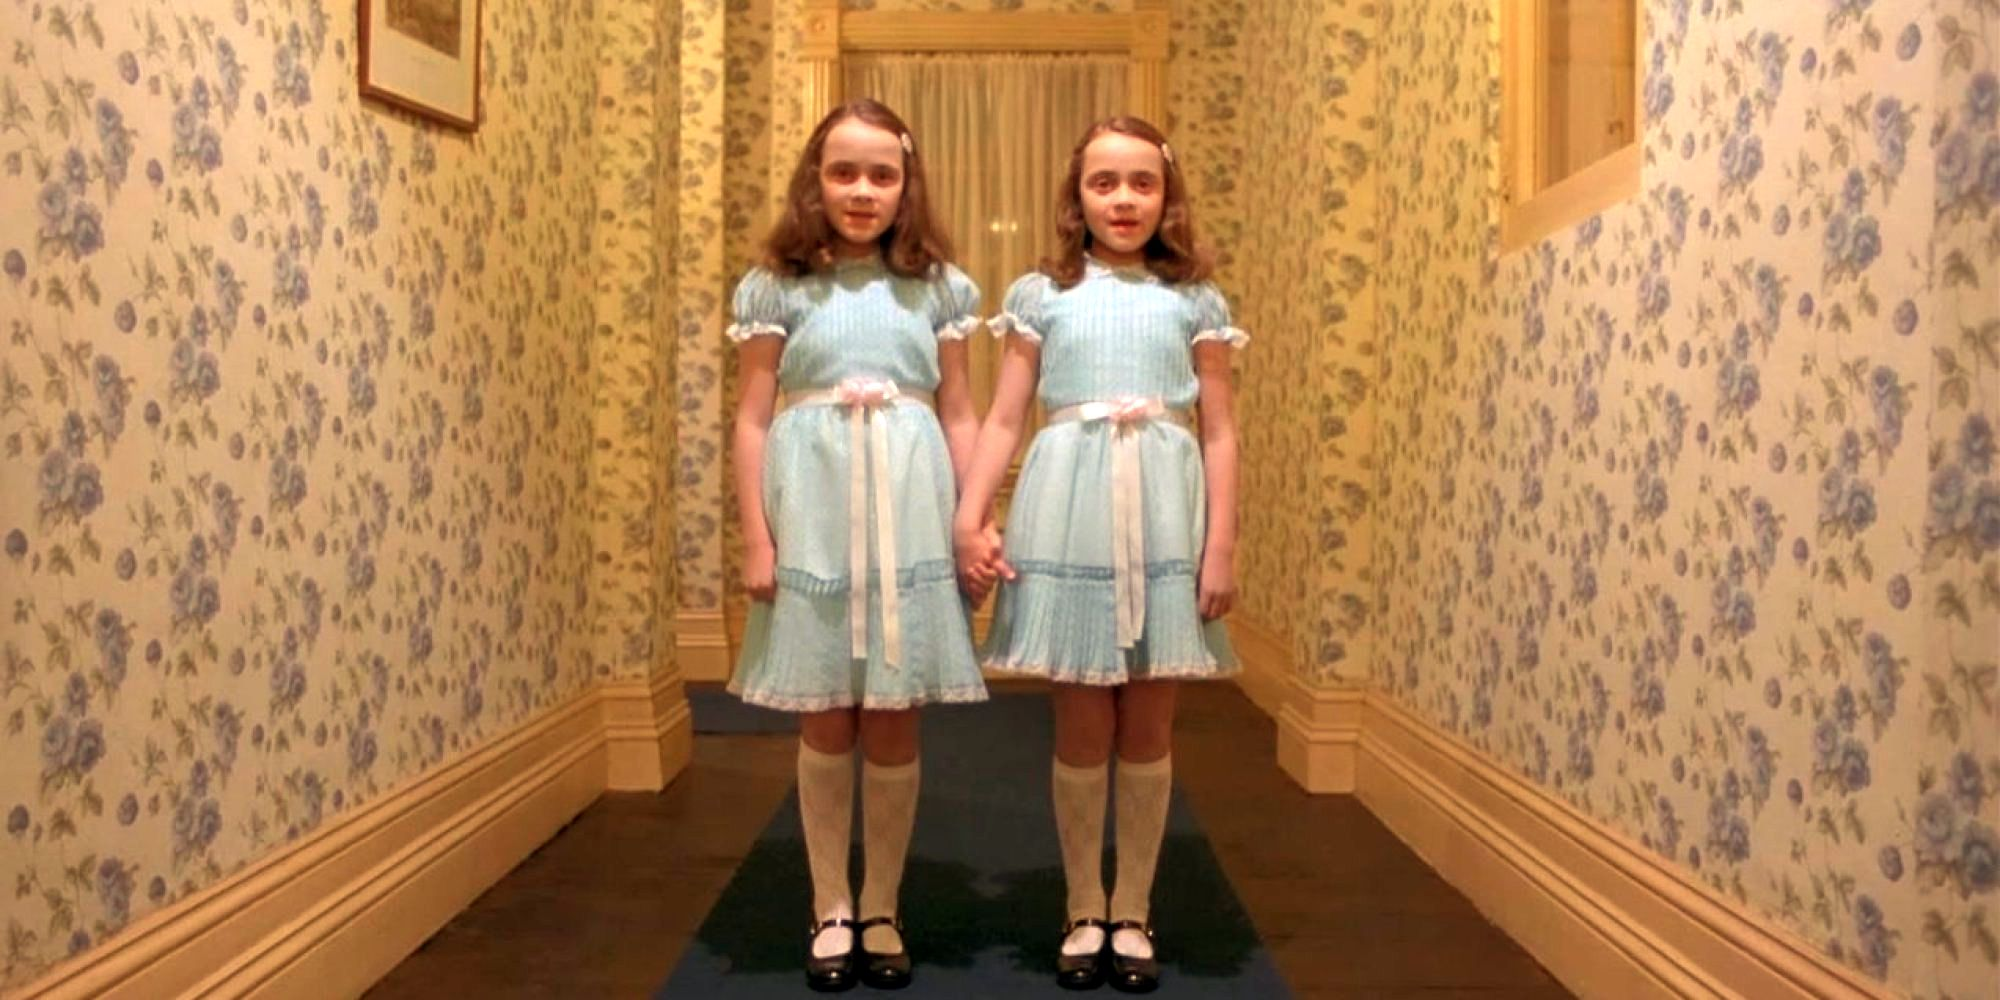 Le inquietanti gemelle del film The Shining, diretto da Stanley Kubrick nel 1980. Kubrick, The shining - Twins shining gemelli godoi cult cultstories città brasile esperimenti nazismo mengele cloni geni dna genetica clonazione the shining streaming the shining beach the shining hotel the shining trailer the shining traduzione the shining stars the shining libro the shining significato the shining twins the shining frasi the shining the shining streaming ita the shining film the shining altadefinizione the shining analisi the shining all work and no play the shining amazon the shining apollo 11 the shining actors the shining tittyfuck alternate ending the shining axe scene the shining aspect ratio the shining apollo 11 conspiracy a movie like the shining a sequel to the shining a scene from the shining a review of the shining a nightmare on facetime the shining pompino boquete fellatio sodo ado the shining a dull boy the shining a comedy a short summary of the shining a light in the shining darkness a summary of the shining the shining beach vaadhoo the shining book the shining beach vaadhoo maldive the shining bear scene the shining badly drawn boy the shining bathroom scene the shining bathtub scene the shining band the shining bar scene mr b shining the pearls the shining cast the shining citazioni the shining cb01 the shining curiosità the shining cineblog01 the shining code the shining costume the shining come play with us the shining code 2.0 the shining comedy trailer arthur c clarke the shining ones the shining download the shining download ita the shining darkness the shining dvd the shining director's cut the shining deleted scenes the shining danny lloyd the shining door scene the shining delbert grady the shining do you want to build a snowman film d horreur the shining bande d'annonce the shining the shining d&r the shining eun soo the shining eng streaming the shining ending the shining epub the shining elevator the shining english subtitles the shining ebook the shining extended the shining epub download the shining ending youtube e hero the shining the shining-phrase écrite the shining e hero the shining e the shining ebook free download the shining film completo the shining finale the shining forwards and backwards the shining font the shining film senza limiti the shining film trailer the shining film streaming the shining full movie the shining gemelle the shining golden modena the shining gif the shining grady the shining game the shining girl the shining great party isn't it the shining gold room the shining gay scene the shining google books the shining hotel parma the shining horror the shining here's johnny the shining halloween costume the shining horror movie the shining here's johnny meaning the shining hour 1938 the shining halloran the shining honey i home the shining ita the shining ita streaming the shining imdb the shining ita download the shining italia 1 the shining italiano the shining interpretazione the shining intro the shining illuminati the shining i'm back is the shining really scary is the shining a horror movie in the shining is the shining funny is the shining on tv is the shining a comedy shining mini series netflix in the shining moonlight is the shining about apollo 11 i'm back the shining is the shining is the shining supernatural is the shining scary is the shining on netflix the shining jack nicholson the shining j dilla the shining johnny the shining jack torrance the shining jack nicholson frozen the shining j dilla zip the shining johnny here the shining jack kills halloran the shining jack quotes the shining july 4 1921 j dilla the shining j dilla the shining zip j dilla the shining download j dilla the shining rar j dilla the shining download zip j dilla the shining instrumentals j dilla the shining vinyl j dilla the shining 320 j dilla the shining full album j dilla the shining instrumentals download the shining kubrick the shining kickass the shining kindle the shining kubrick analysis the shining killing scene the shining kubrick vs king the shining kubrick clouds the shining king stephen the shining kill the shining kubrick hotel k dub shine the shining peter k rosenthal the shining the shining - k dub shine mp3 the shining locandina the shining libro pdf the shining location the shining light the shining lyrics the shining lloyd the shining last scene the shining light wow the shining locations l'arc the silver shining the shining l the shining l histoire the shining movie the shining mymovies the shining main title the shining meaning the shining music the shining meme the shining making of the shining megavideo the shining me titra shqip the shining movie location m night shyamalan the shining the shining m the shining m'lady the shining netflix the shining novel the shining new the shining novel pdf the shining nicholson the shining native american the shining novel summary the shining nyc the shining novel analysis the shining novel review the shinin smif n wessun smif n wessun the shining zip the shining n word smif n wessun the shining download the shining ost the shining online subtitrat the shining overlook hotel the shining oscars the shining opening the shining old lady the shining one the shining original ending the shining online streaming the shining official trailer o'grady the shining shining o the shining o brien the shining ones o iluminado (the shining) the shining o filmu the shining o filme david o'daniel the shining the shining o el resplandor the shining of things the shining of love the shining of stephen king the shining of darkness the shining lyrics badly drawn boy the shining lyrics misfits the shining lyrics black sabbath the shining lyrics swollen members of the shining the shining parma the shining pdf the shining poster the shining pdf ita the shining plot the shining path the shining prequel the shining photo the shining part 1 the shining parody the shining p light the shining quotes the shining quote the shining quotes all work and no play the shining quotes lloyd the shining quicksilver the shining quotes danny the shining quotes jack the shining quotes honey i'm home the shining quote jack nicholson the shining quotes come play with us the shining q&a the shining remake the shining riassunto the shining room 237 the shining recensione the shining rotten tomatoes the shining review the shining redrum the shining recut the shining room 237 meaning the shining room the shining r the shining streaming eng the shining spiegazione the shining serie tv the shining streaming sub ita the shining stasera the shining sub ita stephen.king's-the.shining the shining s king the shining s prevodom the shining s prijevodom the shining trama the shining tv series the shining theme the shining tony the shining twins scene the shining tumblr the shining tv tropes the shining ugly christmas sweater the shining uncut the shining ullman the shining uk the shining uk cinema the shining uncanny the shining uk rating the shining union square the shining unmask the shining uk blu ray shining youtube the shining video shining videogame the shining versions the shining vhs the shining vine the shining vimeo the shining vk the shining vs psycho the shining vs it the shining vs doctor sleep gta v the shining gta v the shining easter egg treehouse of horror v the shining frozen v the shining trevor gta v the shining the shining wikipedia the shining wikiquote the shining wallpaper the shining wendy the shining who is tony the shining weird scene the shining wendy i'm home the shining who is johnny the shining wendy carlos the shining wizard the shining xfinity the shining xmas sweater the shining xmas jumper the shining xem phim the shining xmovies8 the shining x ambassadors the shining xem online the shining xbox the shining xvid sonic x the shining road sonic x the shining road lyrics sonic x the shining road download sonic x the shining road mp3 x ambassadors the shining sonic x the shining road english sonic x the shining road instrumental sonic x the shining road english lyrics joker x the shining mortal kombat x the shining the shining youtube the shining yify the shining year the shining you've always been the caretaker the shining ytp the shining youtube trailer the shining youtube full movie the shining yugioh the shining yahoo answers the shining yosemite the shining zoom the shining zip j dilla the shining zizek the shining zavvi exclusive limited edition steelbook blu ray the shining zoom shot the shining zavvi the shining zitate the shining zusammenfassung the shining zwillinge the shining zone telechargement stephen king - the shining 02 - doctor sleep 01439 the shining the shining 1997 the shining 1980 the shining 1997 streaming ita the shining 1997 streaming the shining 1980 trailer the shining (1980) - bathtub scene the shining 1080p the shining 1997 trailer the shining 1980 film location the shining 1921 1 the shining 1980 1 blackwing gram the shining star toy story 1 the shining the shining 1 7 1 channel the shining chapter 1 the shining the shining 1/5 the shining 1/2 the shining 1 link the shining 1/6 the shining 2013 the shining 237 the shining 2007 the shining 2014 the shining 2010 the shining 2003 the shining 2012 the shining 217 the shining 2015 the shining 2 trailer silent hill 2 the shining the shining 2 the shining 2 doctor sleep the shining 2 imdb the shining 2 redrum the shining 2 wikipedia the shining 2 duke nukem the shining 2 dvd insidious 2 the shining the shining 300mb the shining 35mm the shining 3d the shining 360 the shining 300mb download the shining 3 part series the shining 35th anniversary the shining 30 seconds to mars the shining 30 seconds bunnies the shining 3 years 5 months rwby episode 3 the shining beacon the shining 3 toy story 3 the shining references the shining 3/7 the shining 3/4 sims 3 the shining fallout 3 the shining reference toy story 3 the shining rwby episode 3 the shining beacon pt.2 rwby episode 3 the shining beacon pt.1 the shining 4k the shining 42 the shining 480p the shining 4k blu ray the shining 4th july 1921 the shining 480p download the shining 4 july 1921 the shining 4/7 the shining 4x3 the shining 400mb channel 4 the shining radio 4 the shining heart july 4 1921 the shining the shining 5 months 3 years the shining 5/7 the shining 536 the shining gta 5 the shining part 5 the shining in 5 seconds the shining johnny 53 the shining iphone 5 case the shining chapter 5 summary the shining iphone 5 wallpaper gta 5 the shining gta 5 the shining easter egg gta 5 the shining outfit trevor gta 5 the shining grand theft auto 5 the shining 5 conspiracy theories about the shining the shining 5 iphone 5 wallpaper the shining the shining 6 hours the shining 6/7 the shining 666 the shining in 60 seconds the shining part 6 the shining chapter 6 the shining in 60 seconds with bunnies the shining iphone 6 case the shining clip 6/7 society6 the shining 6 weirdest theories about the shining the shining 720p the shining 70mm the shining 720p dual audio the shining 720p x264 english subtitles the shining 720p yify the shining 720p x264 subtitles the shining 720p subtitles the shining 720p izle the shining 720p altyazılı izle the shining 720p türkçe dublaj izle the shining 8 bit the shining 8 bit cinema the shining 8 bit game the shining 8 bit video game the shining 80 the shining 8am the shining chapter 8 summary the shining star channel 8 el resplandor (the shining) 8/13 español latino shining 8 the movie 8 bit the shining 8 bit cinema the shining channel 8 the shining star the shining 8 bits the shining 97 the shining 90s the shining 9gag the shining 9 11 the sun is shining 90s the shining june 9 the shining - warner 90th anniversary edition the shining chapter 9 summary el resplandor (the shining) 9/13 español latino camelot the shining city 9 july session 9 the shining